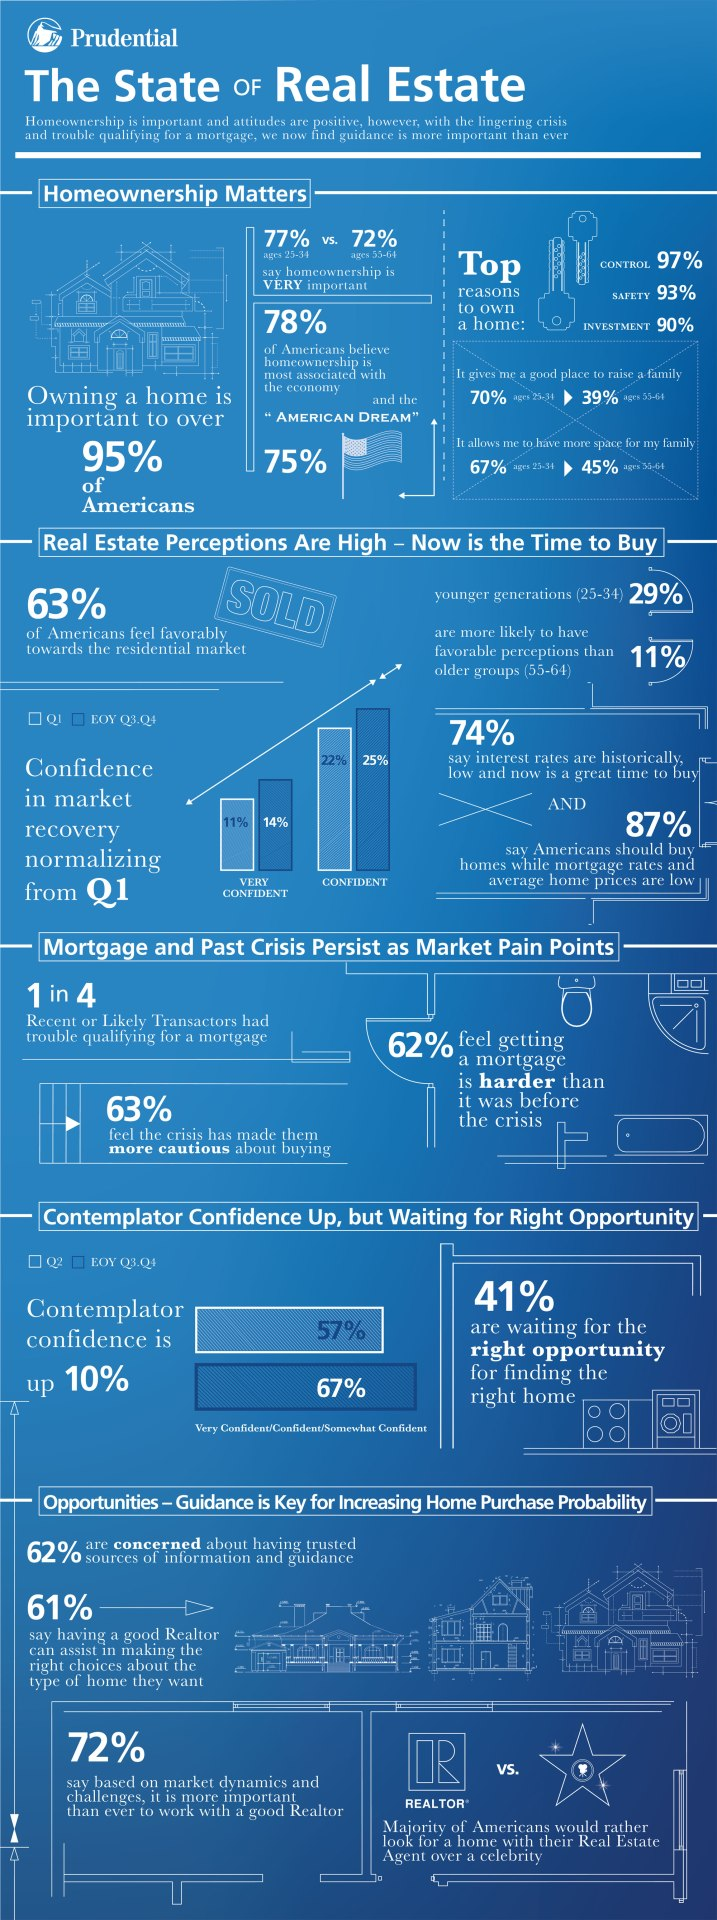 Prudential Real Estate Outlook Survey Infographic-final-large-web